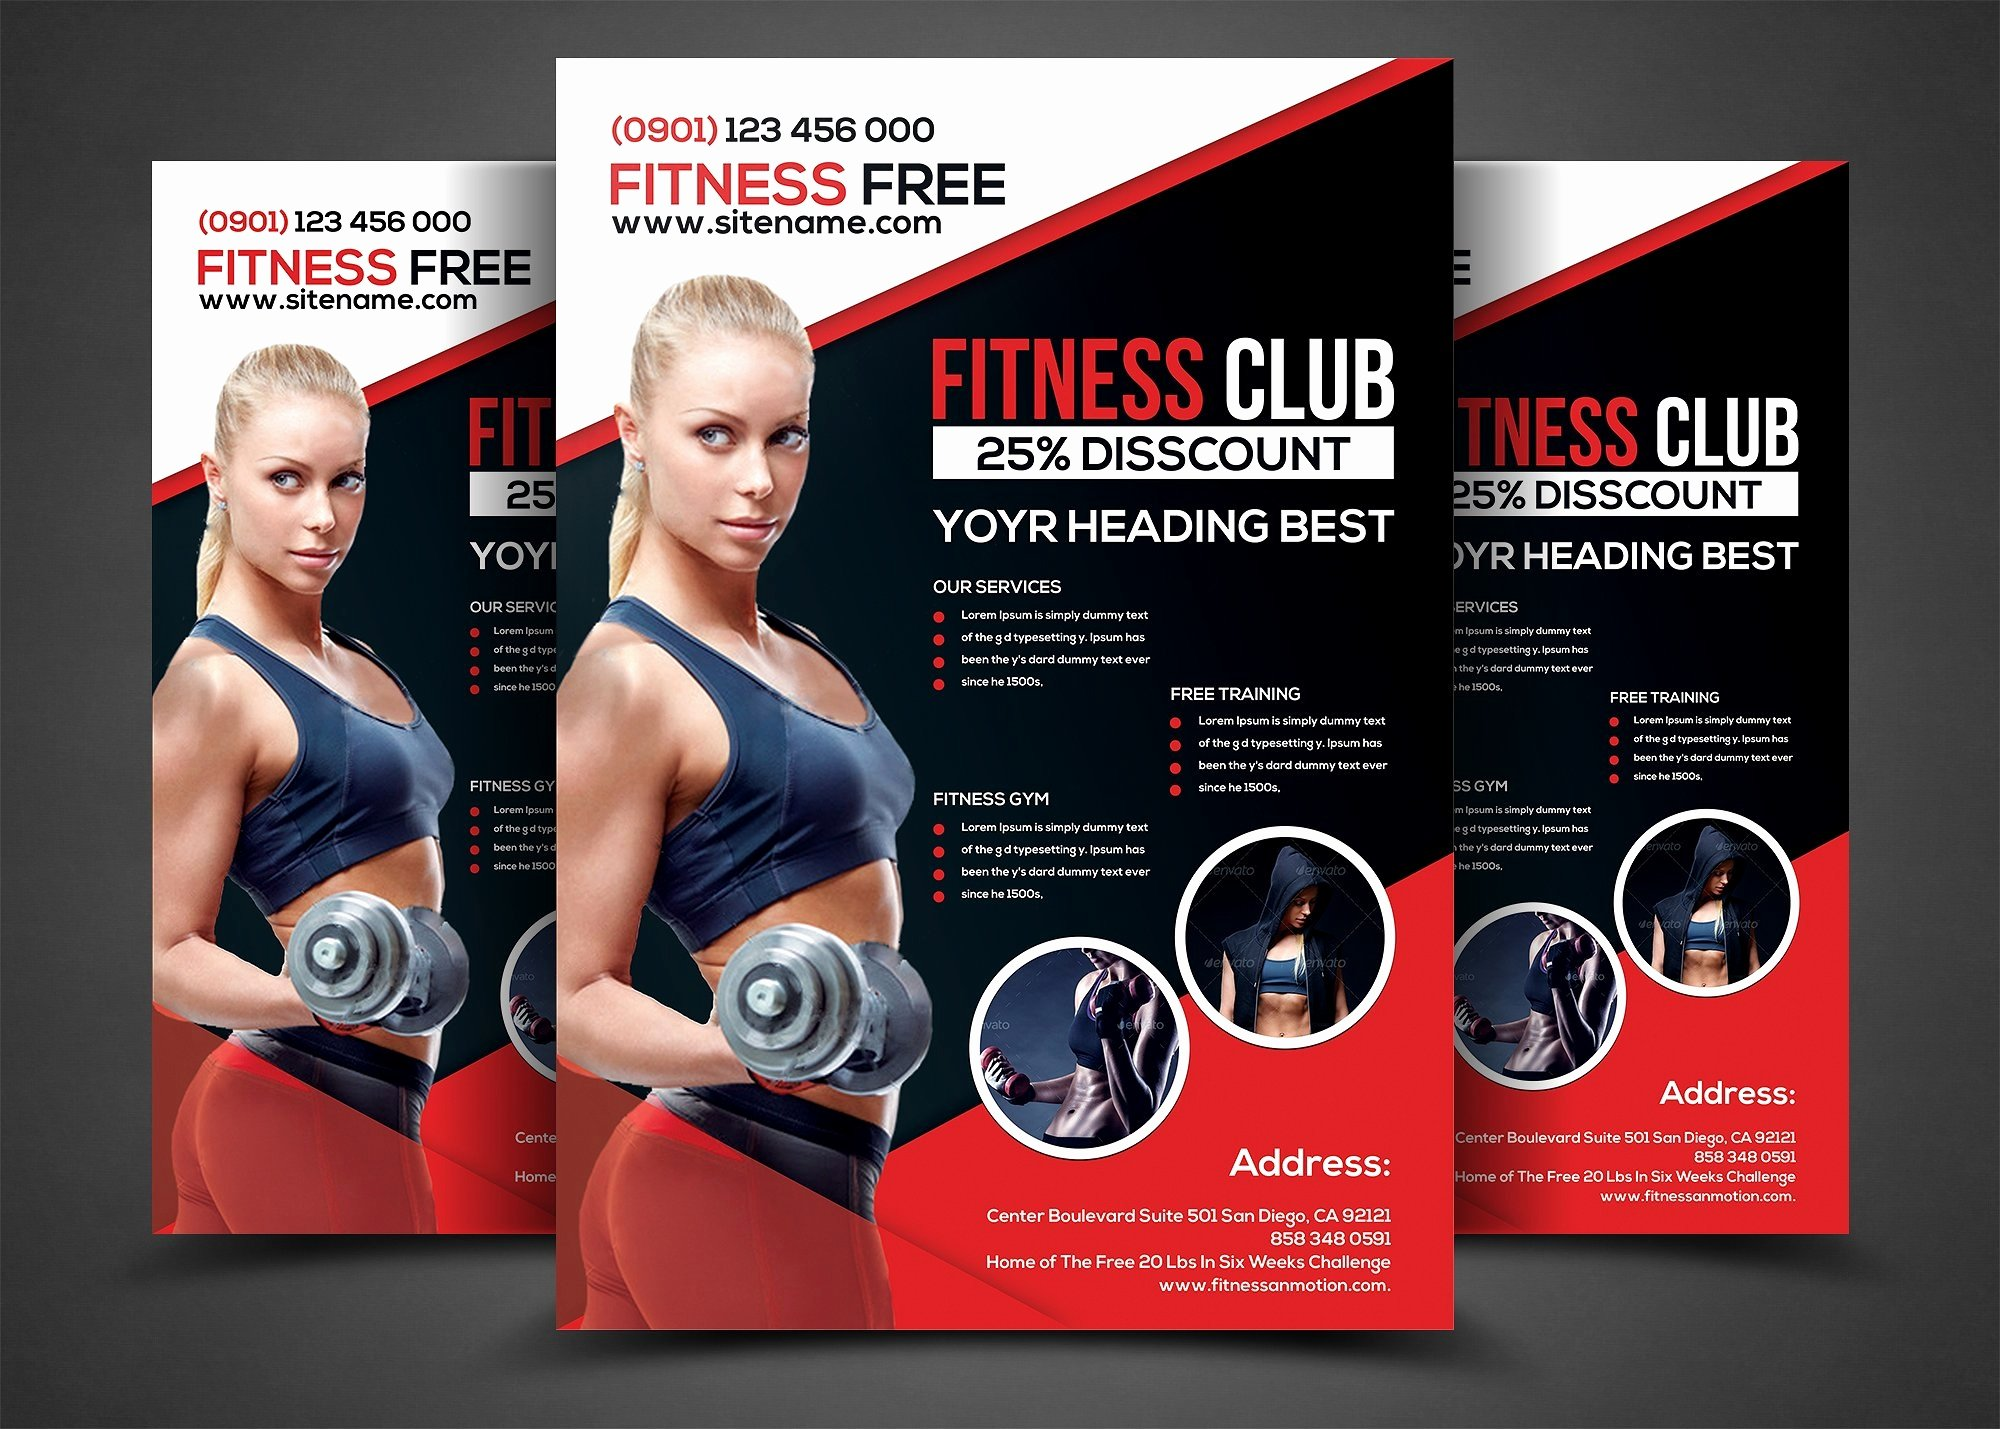 Fitness Flyer Template Free Inspirational 16 Gym Flyer Designs & Examples Psd Ai Word Eps Vector